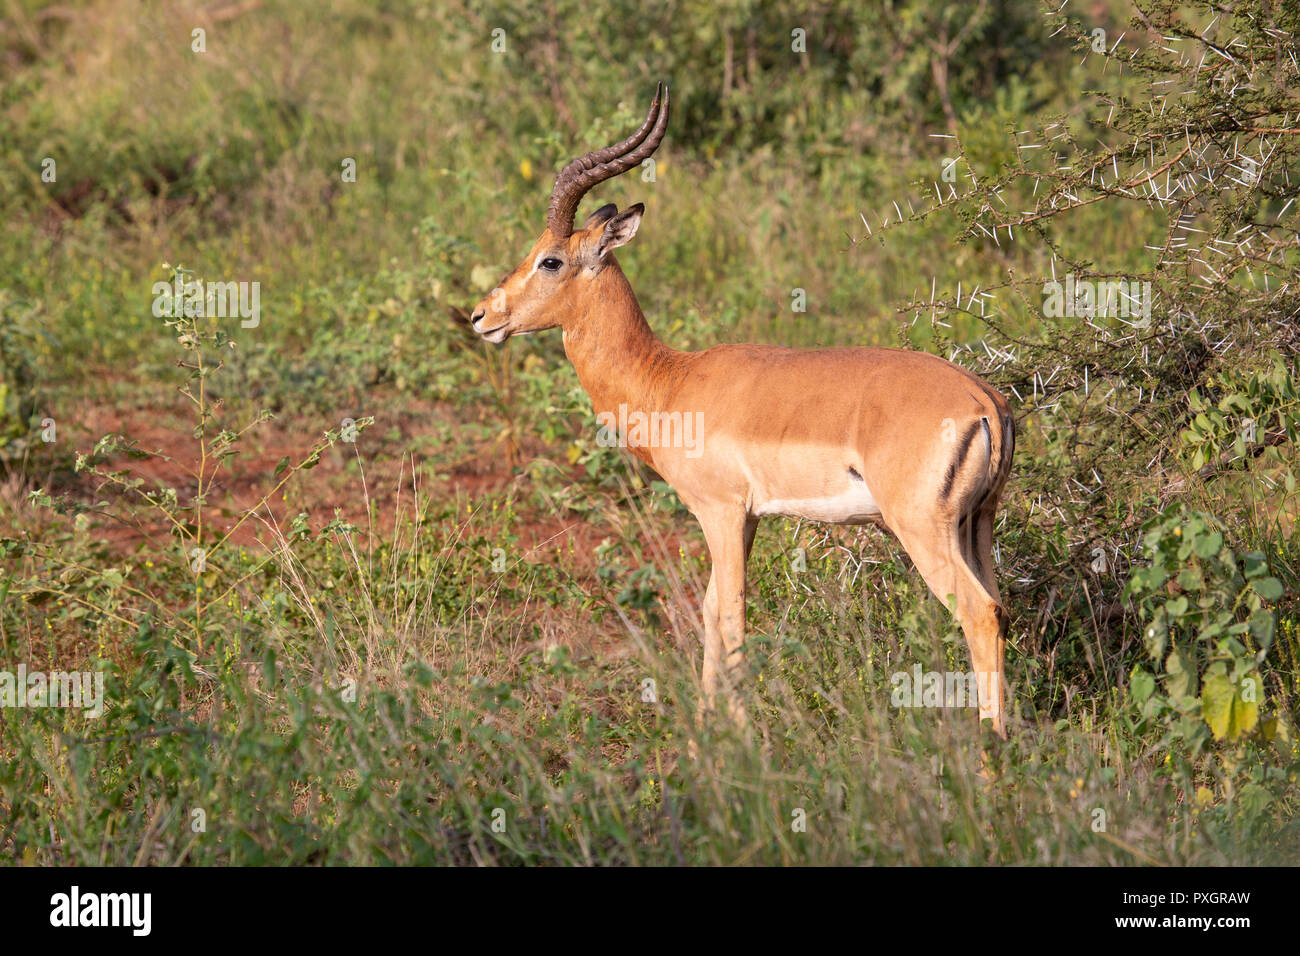 Impala Ram Aepyceros melampus in scrubland in South Africa - Stock Image